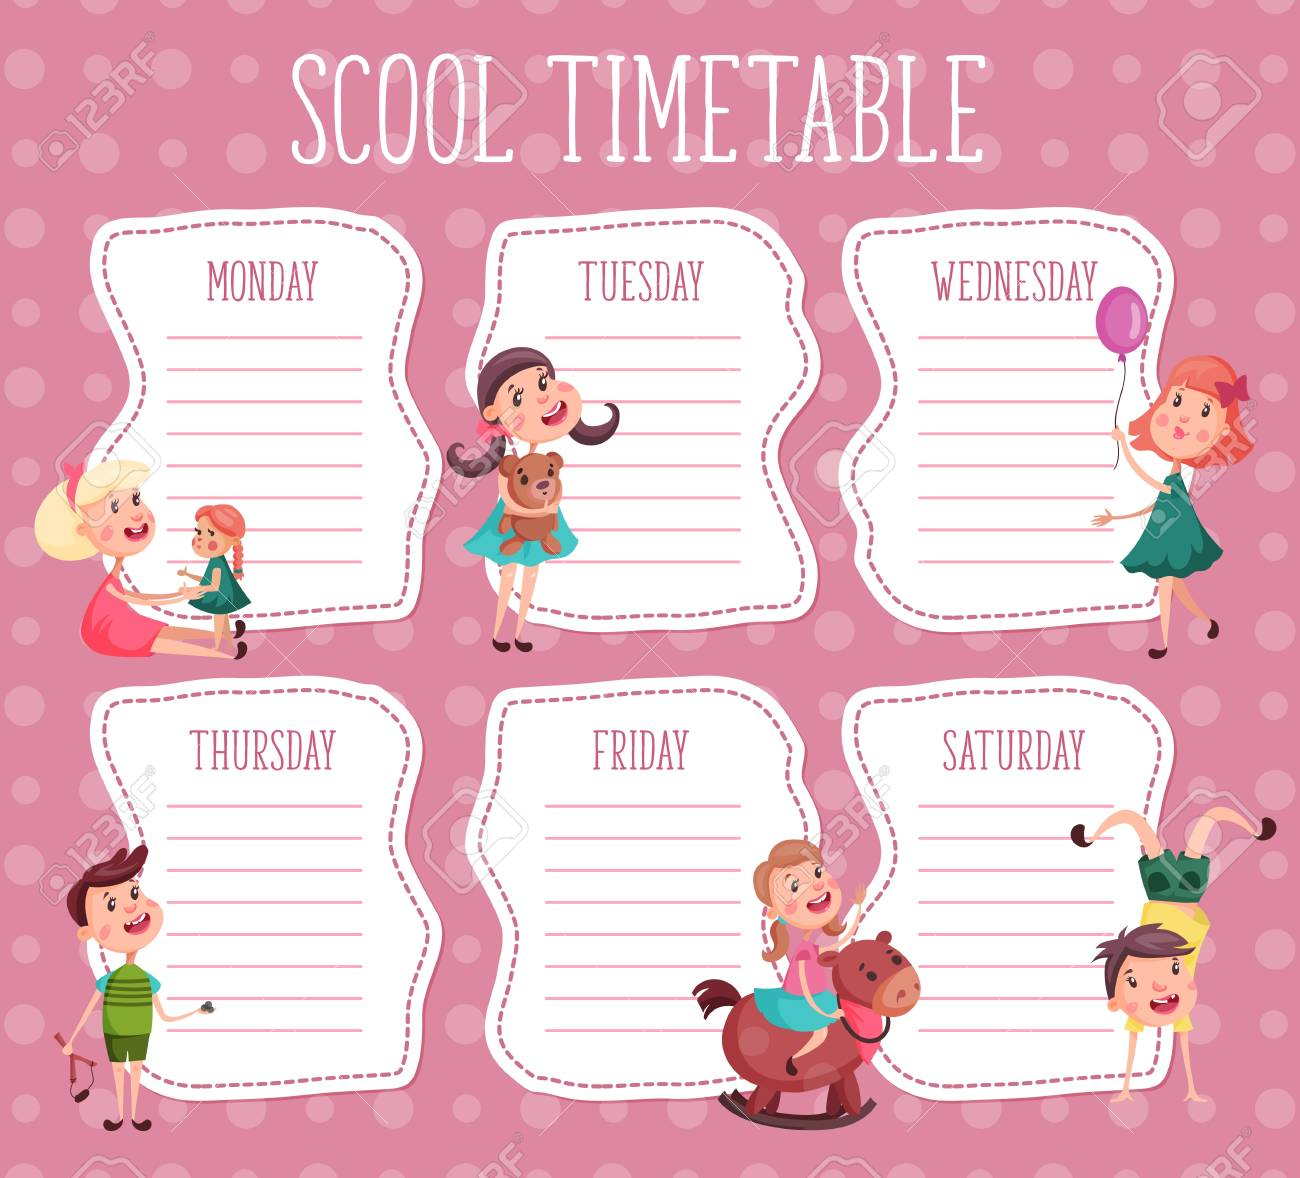 Design Template for school timetable - 88883555